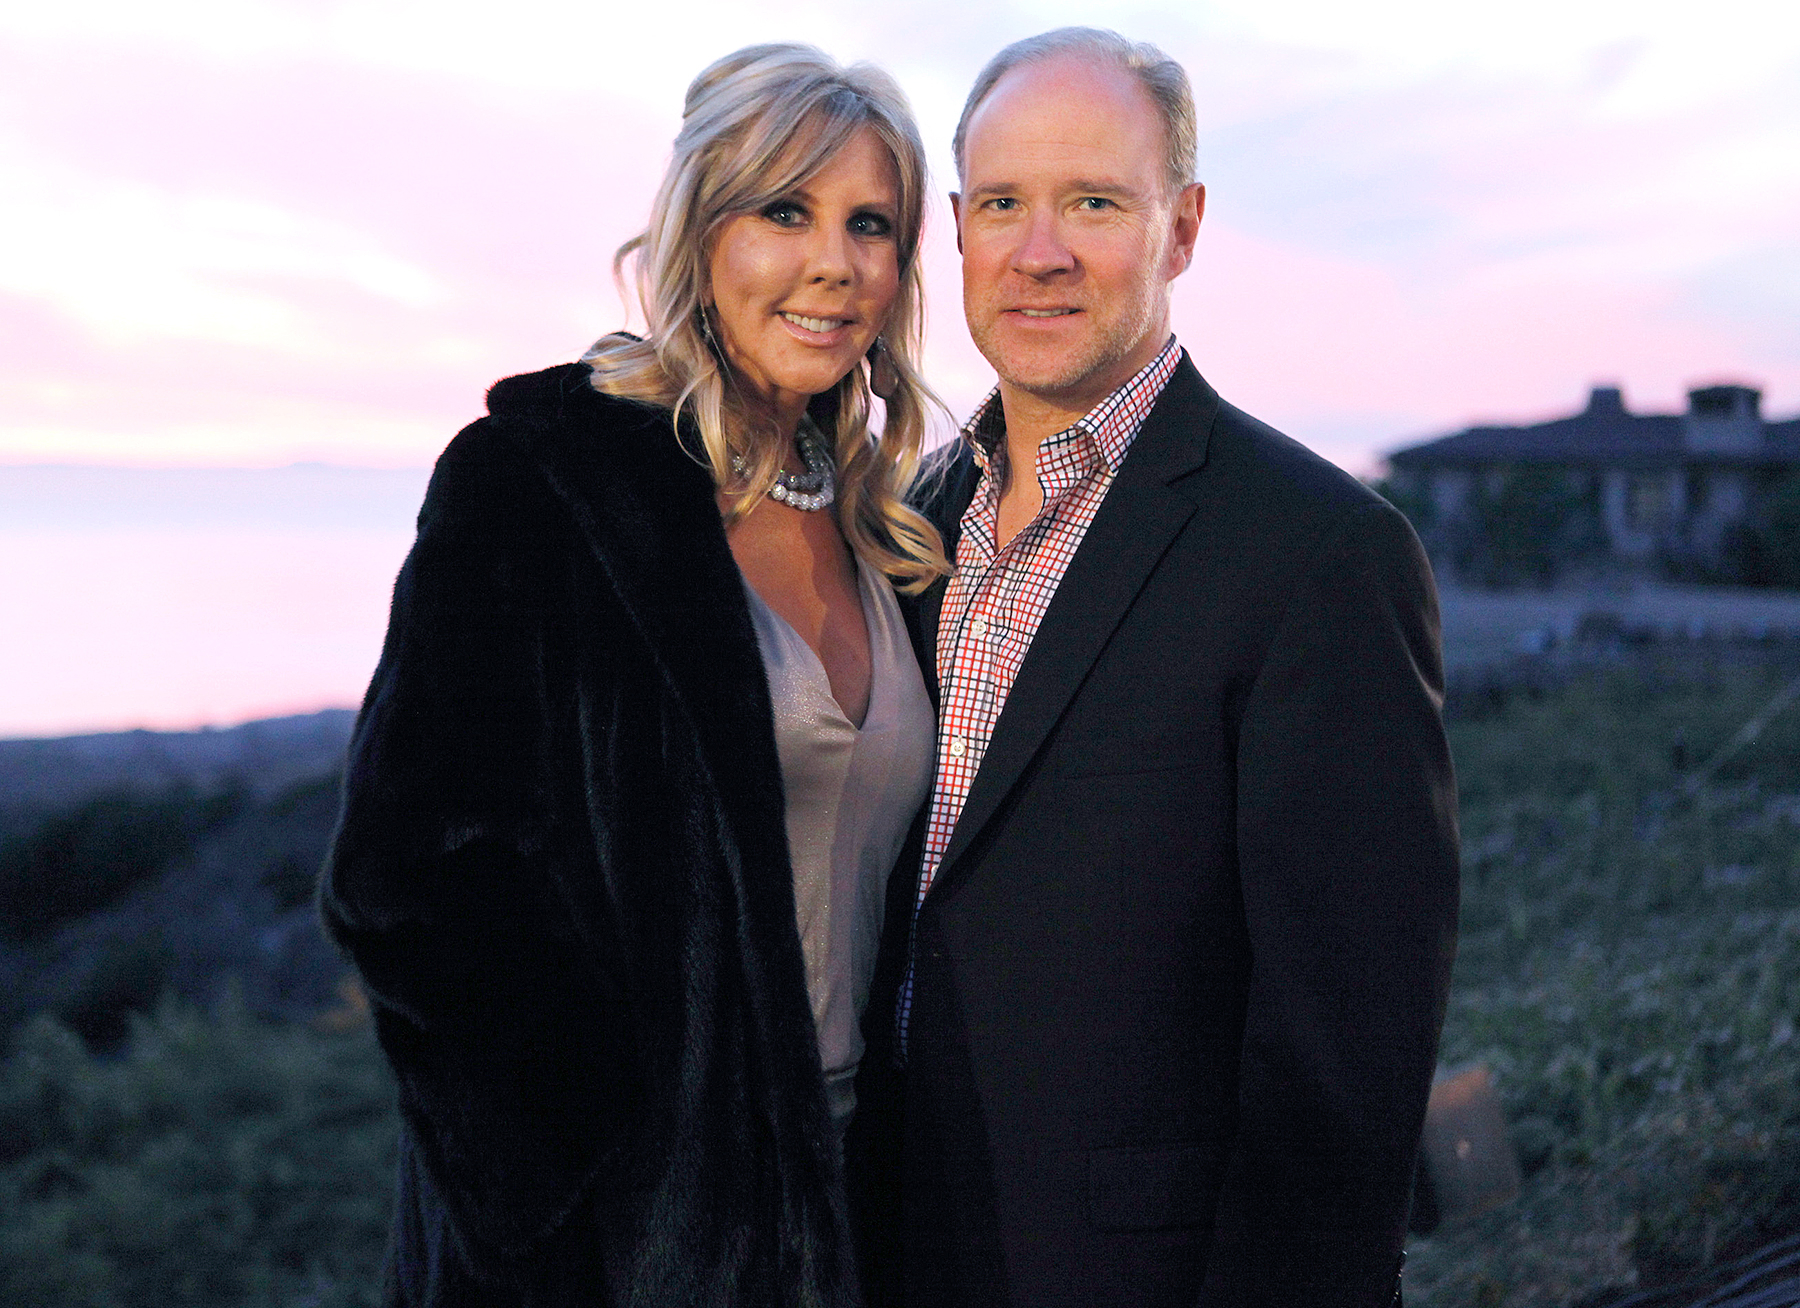 Vicki Gunvalson and Brooks Ayers on The Real Housewives Of Orange County.